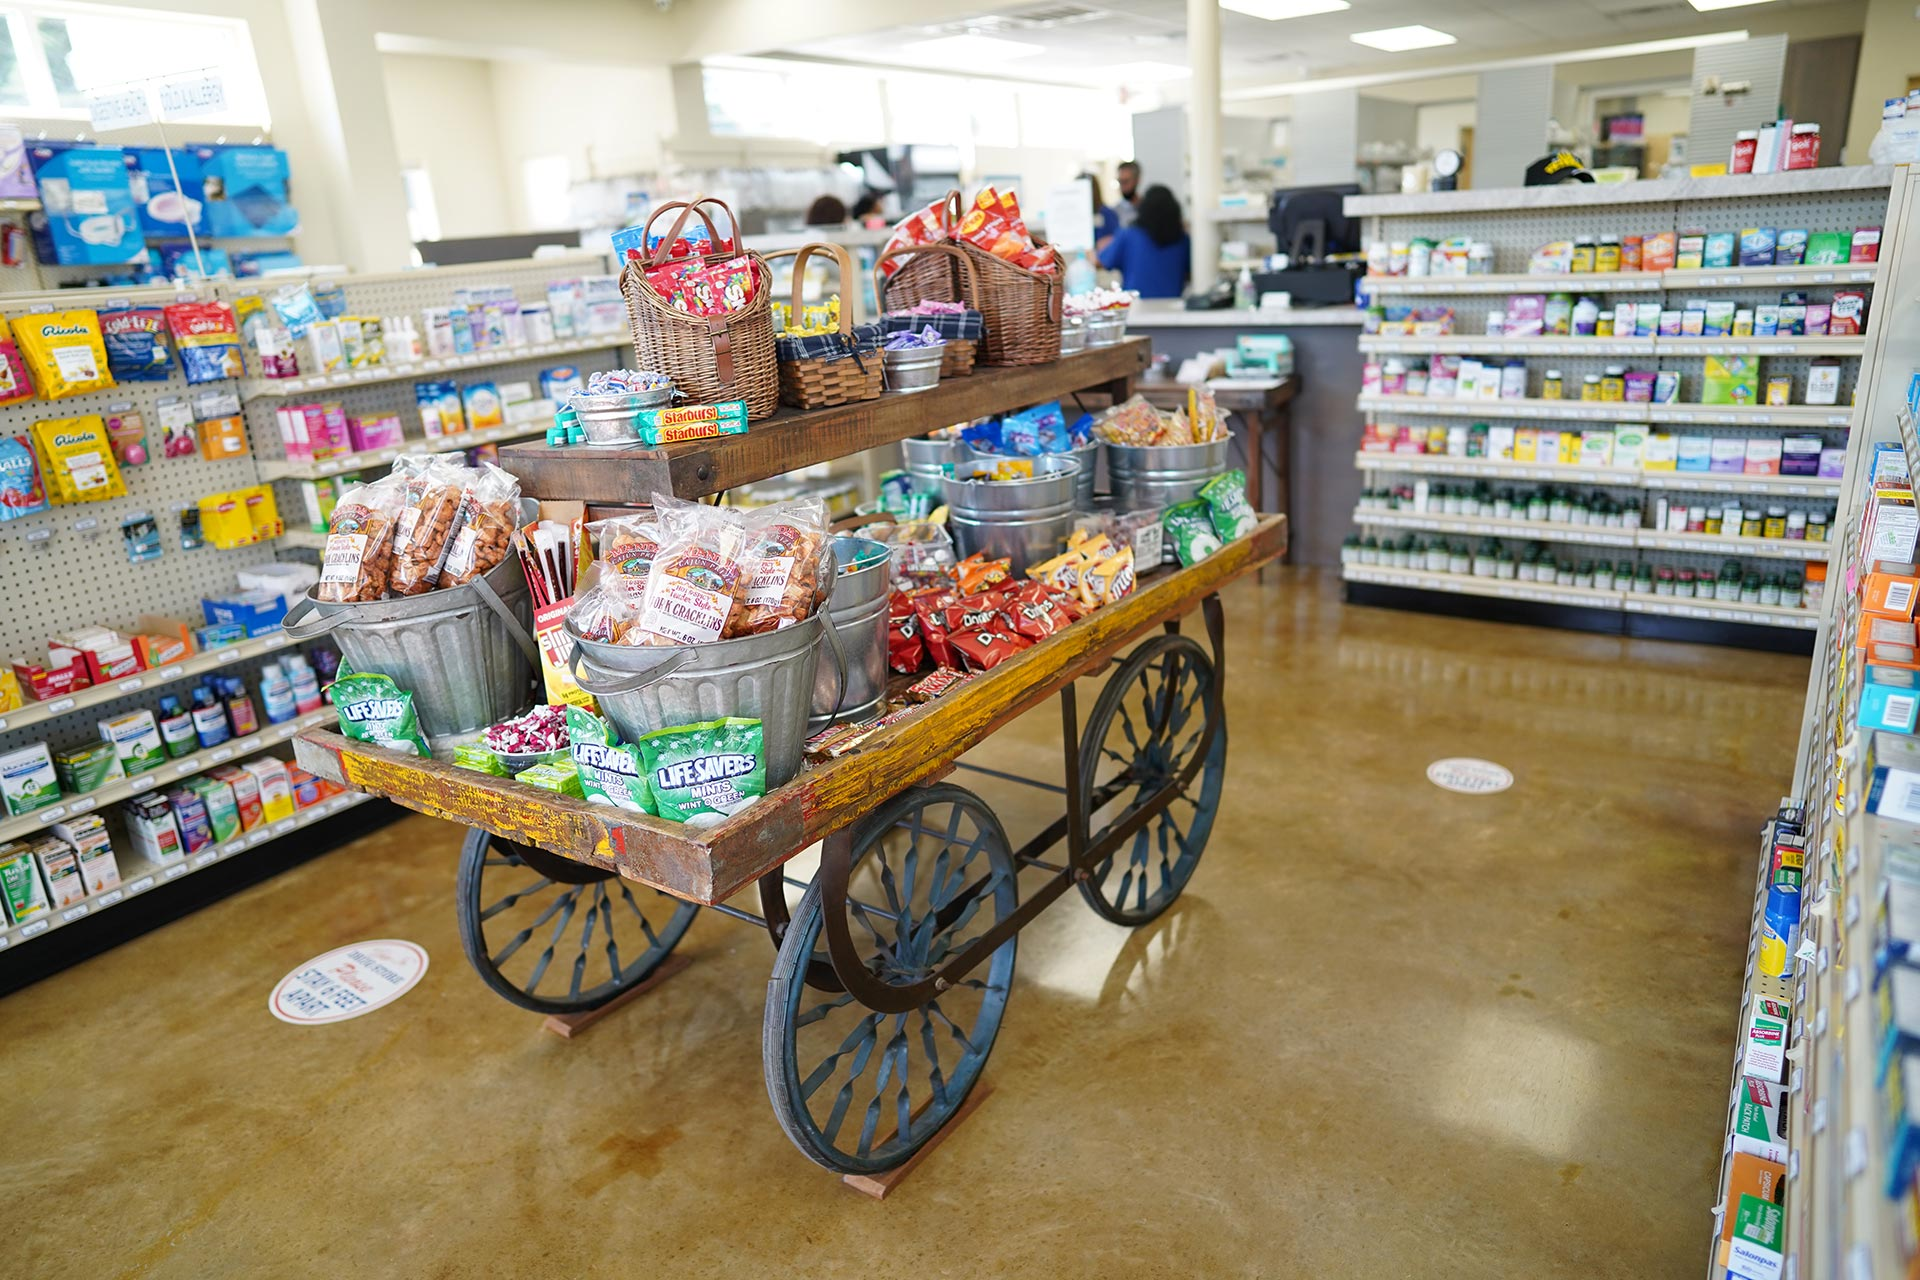 Candy cart with a variety of treats and snacks like cracklins, chips, Skittles, and Starburst.